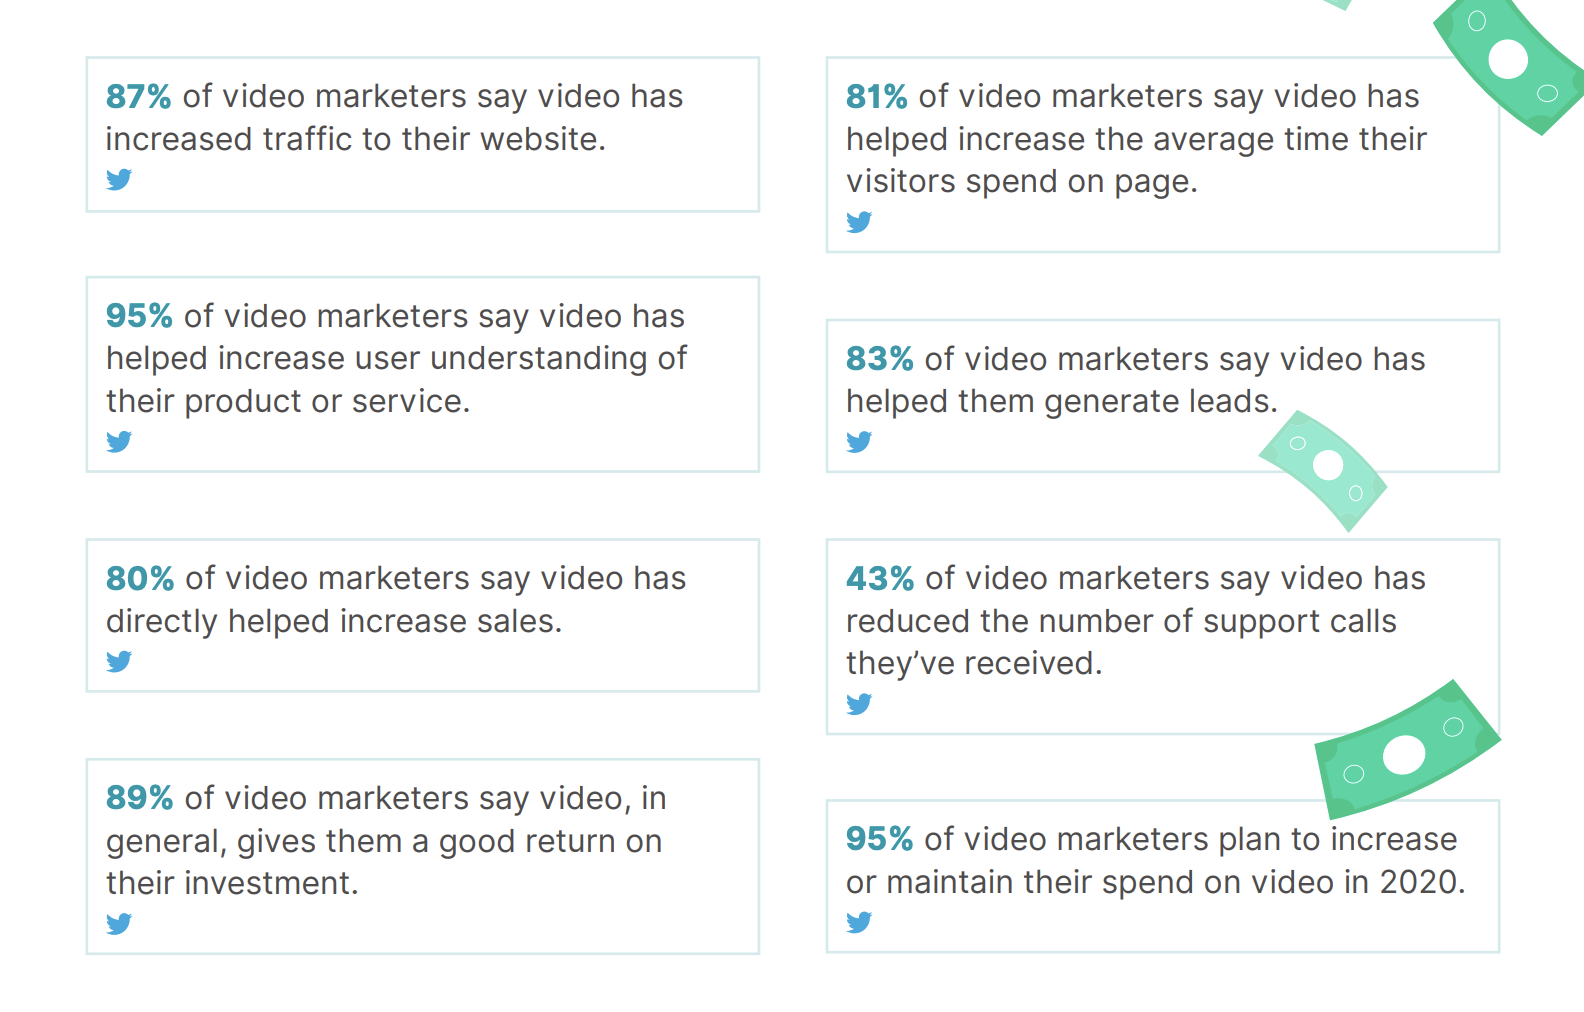 Content Marketing Audit: Wyzowl State of Video Marketing 2020